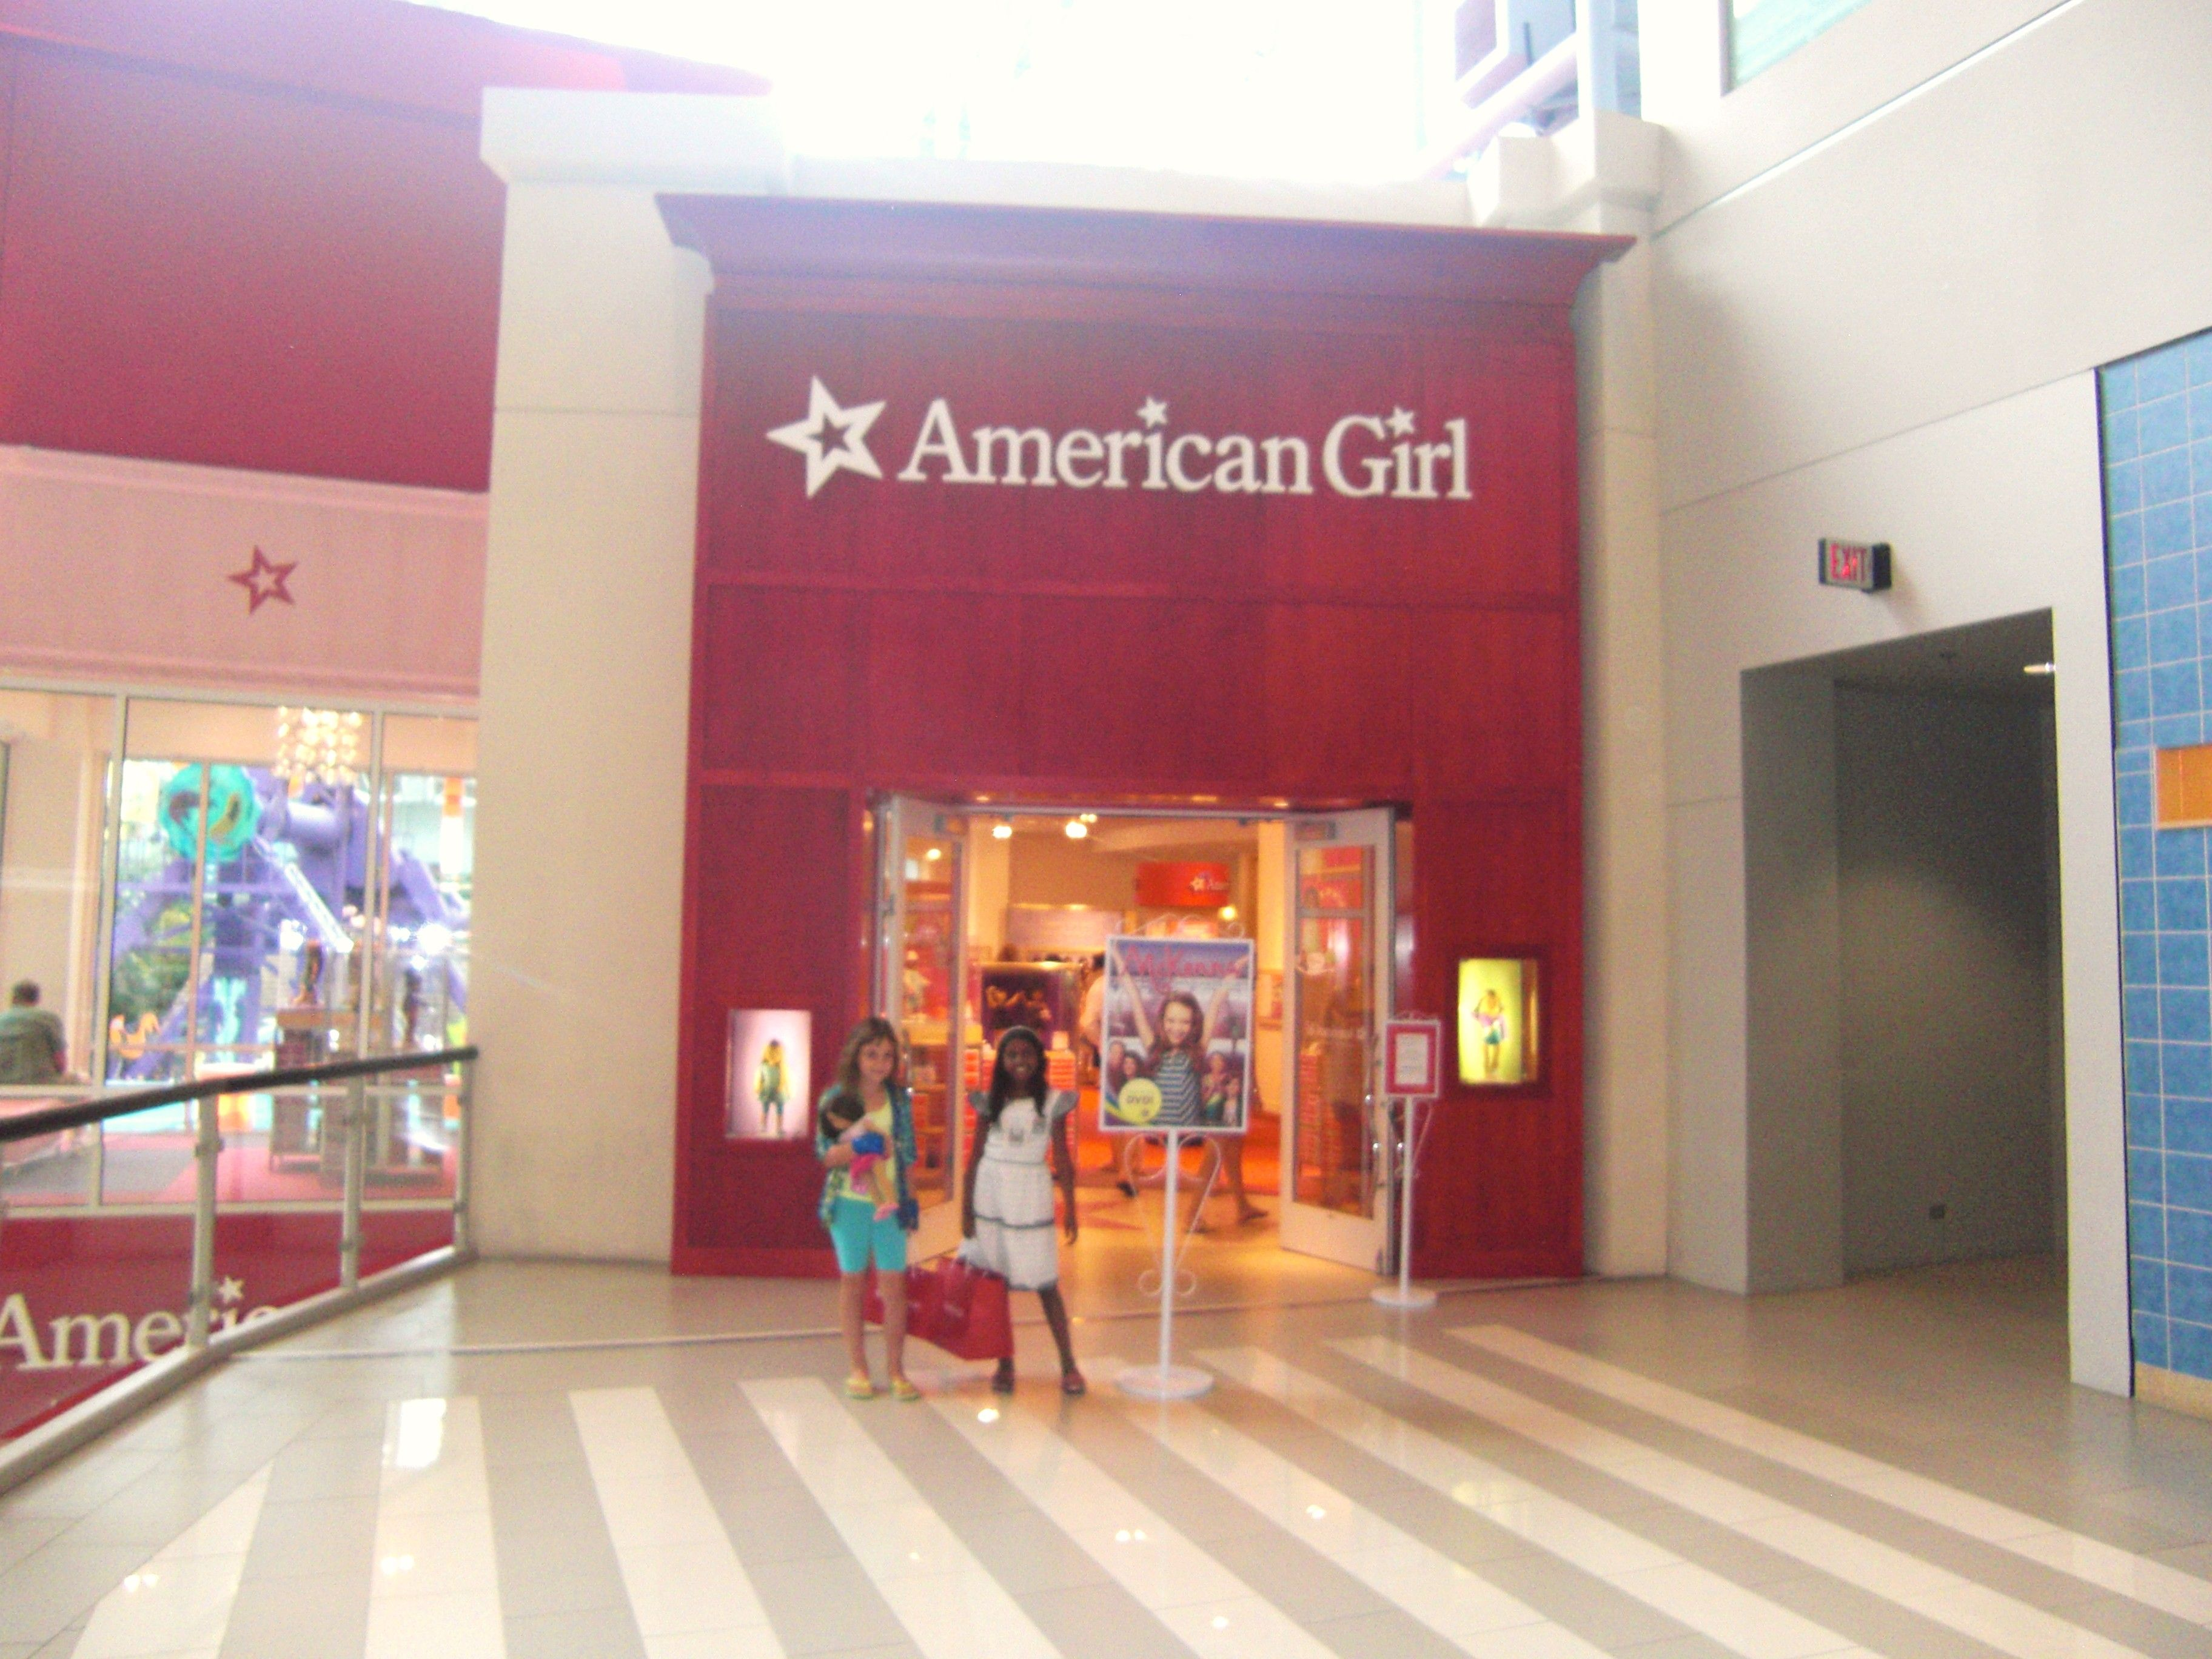 Mall Of America American Girl Store Lol Memories Used To Try On The Clothes To Match The Dolls American Girl Store Mall Of America All American Girl Dolls